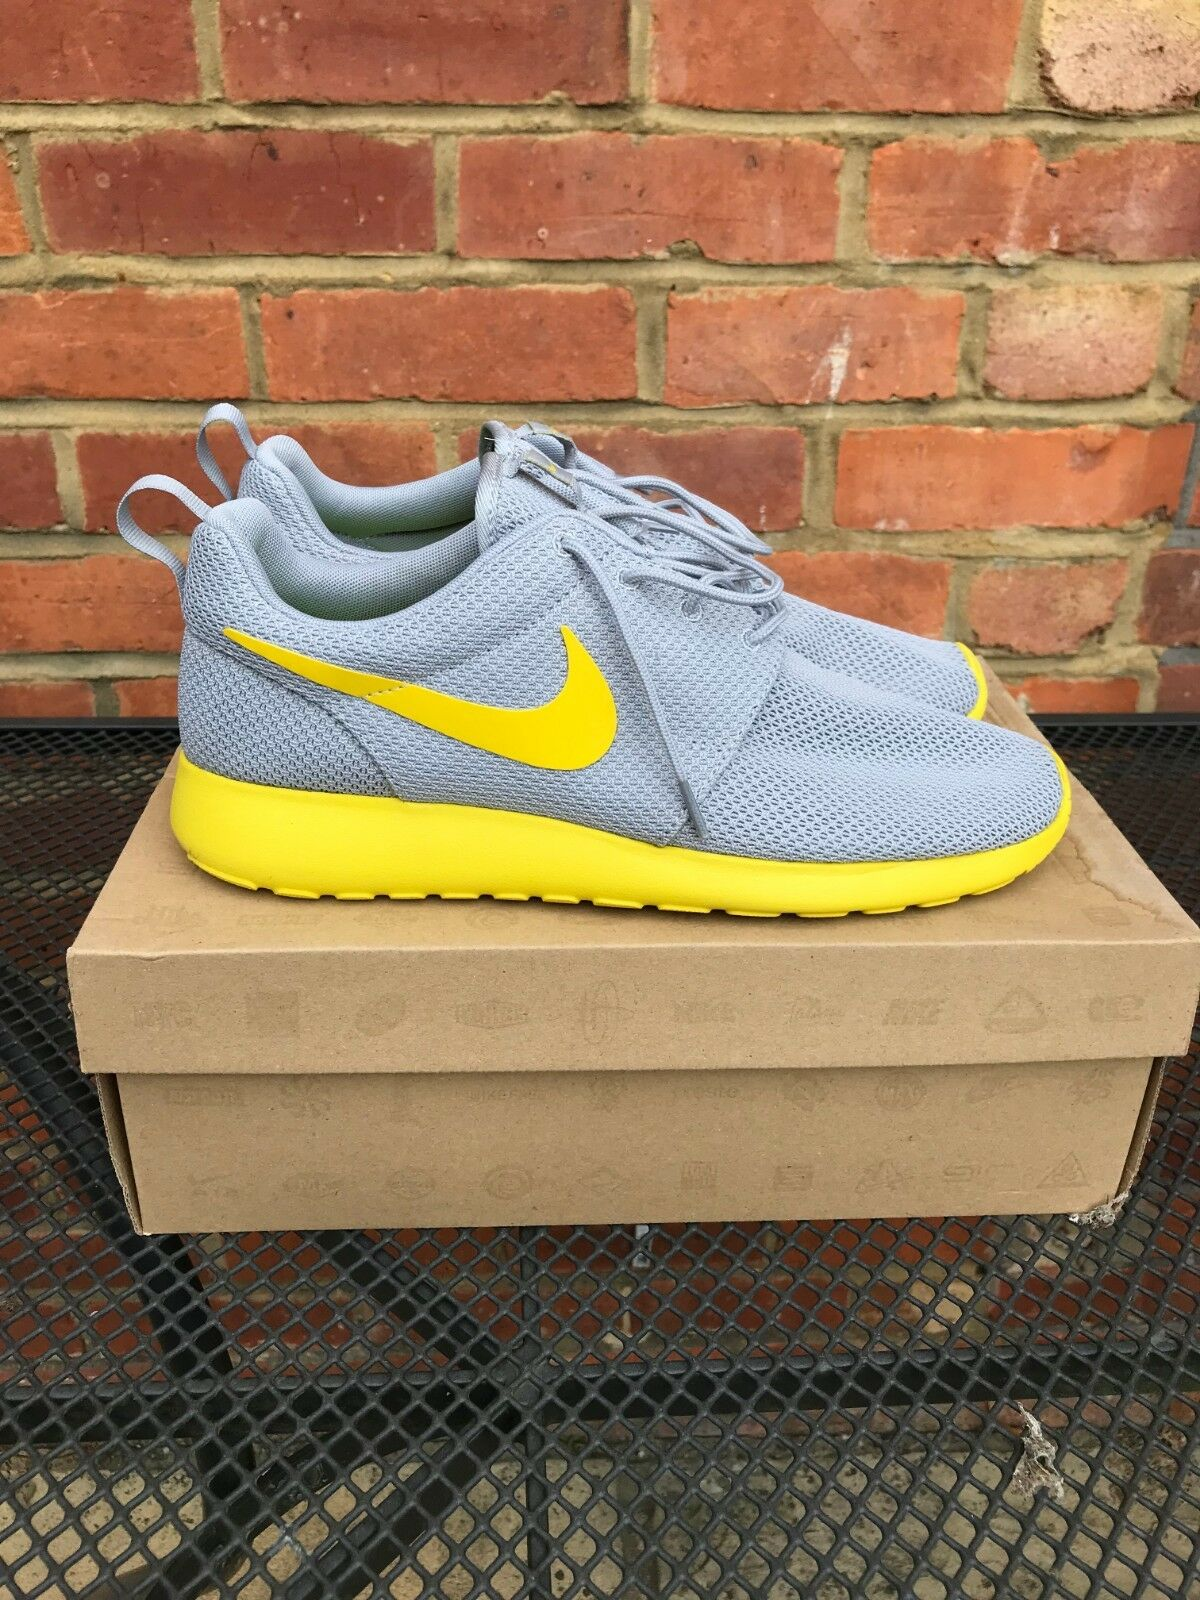 Nike Roshe Run Cool Yellow9.5  Gris  Yellow9.5 Cool VNDS 58cca6